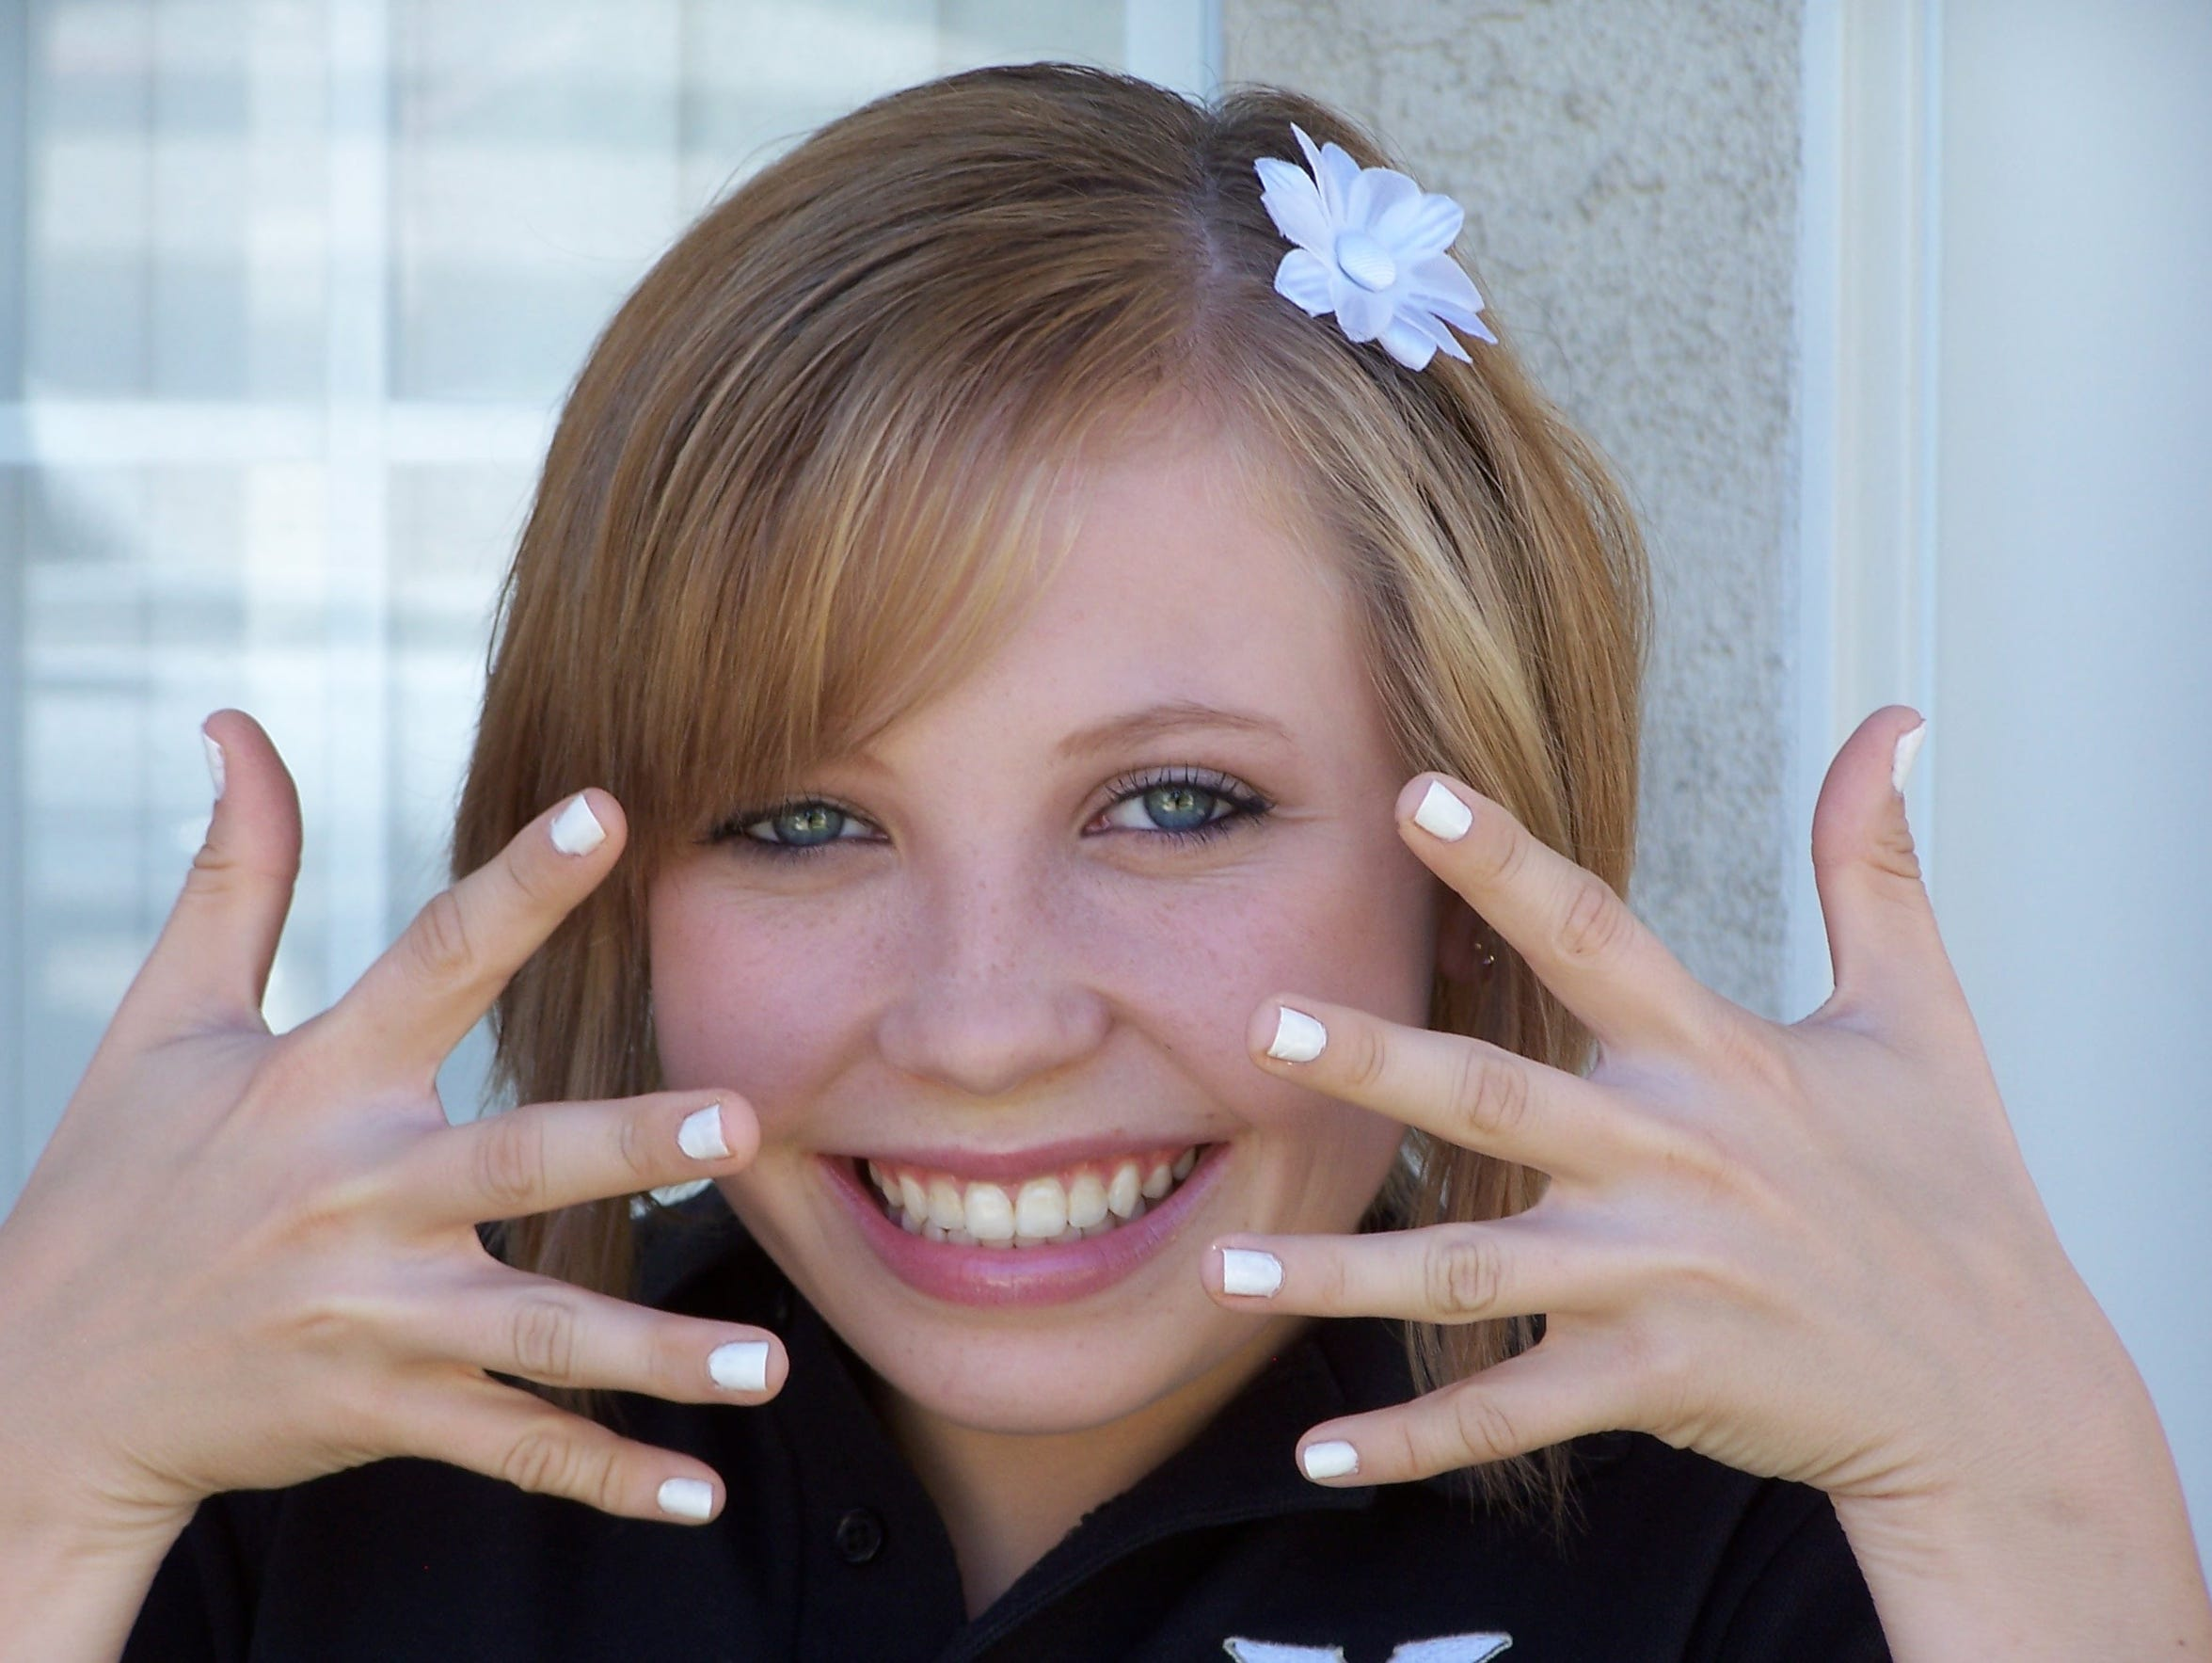 Madeline Muth shows off her freshly painted nails on